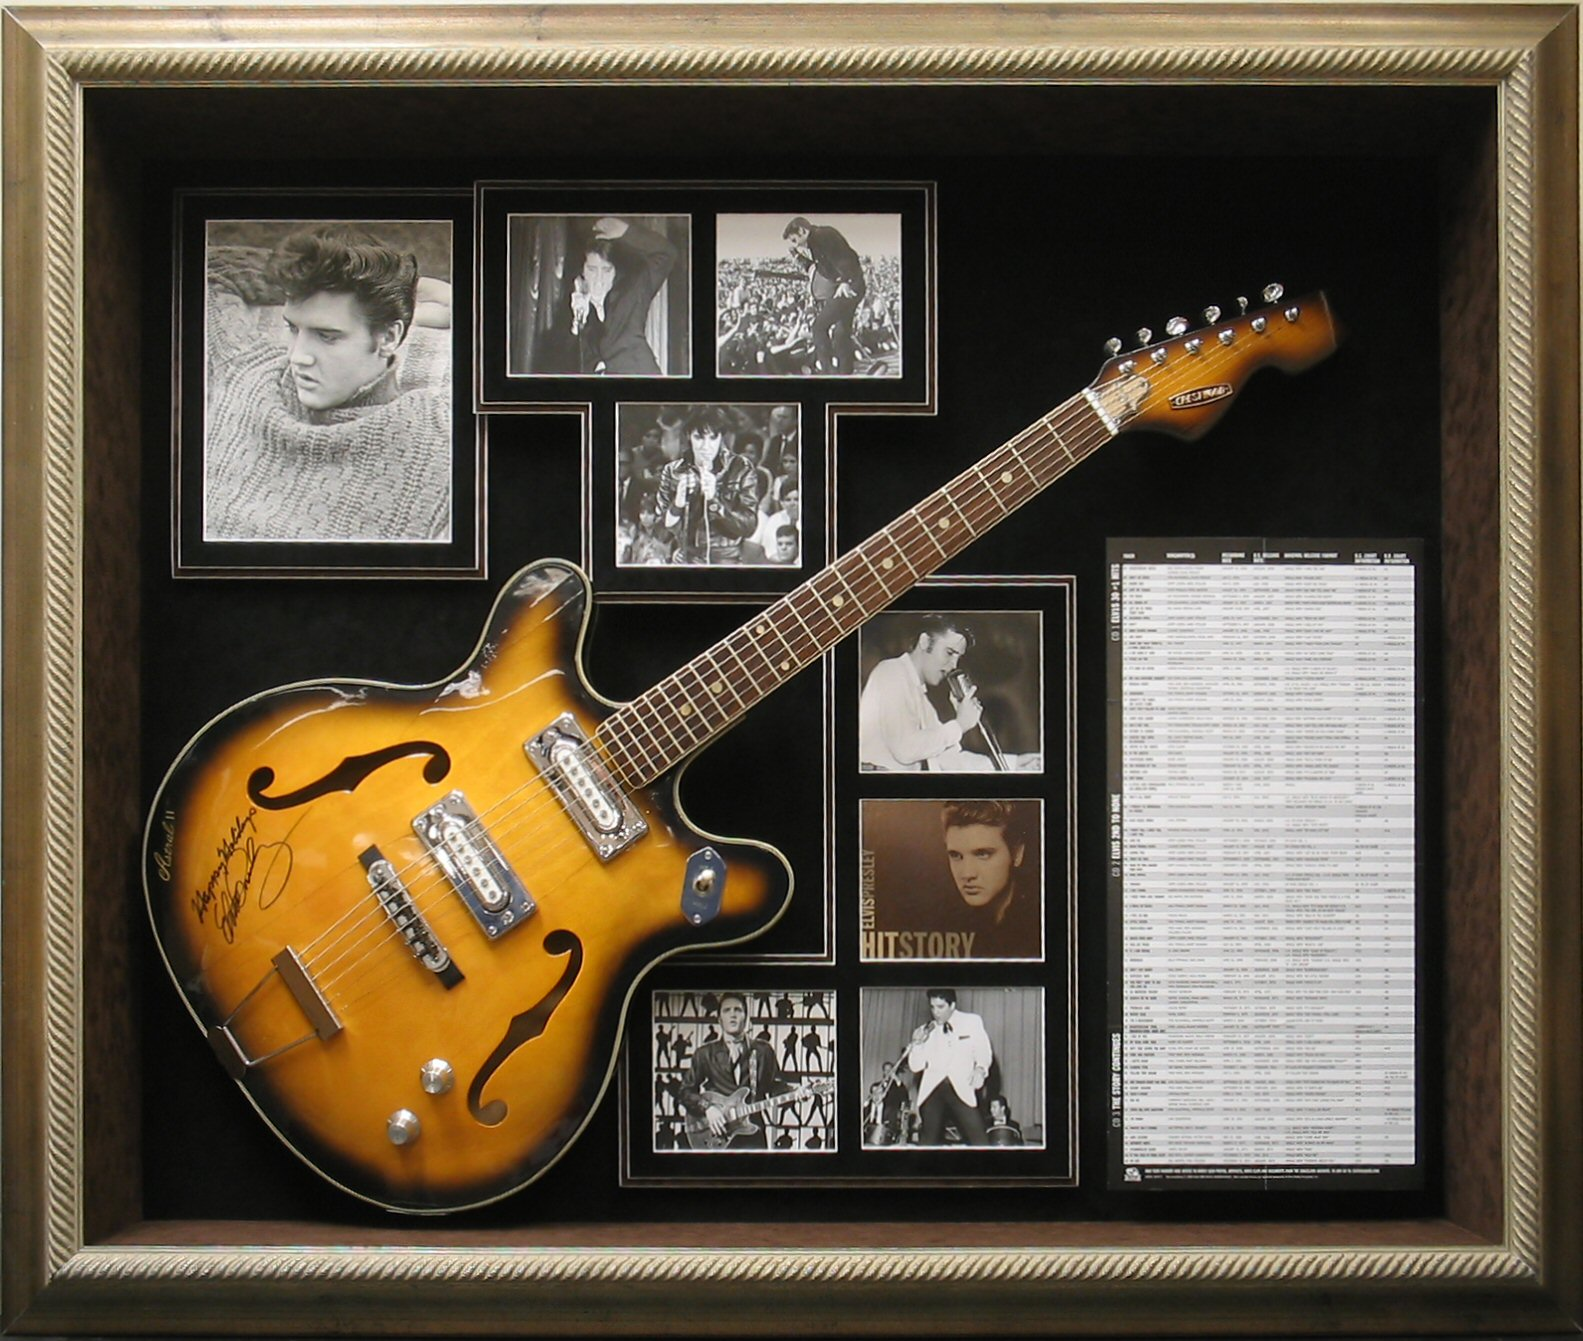 I Simply Adore Elvis, And Any Signed Piece From Him Is Truly An Amazing  Prize To Show Off. A Custom Guitar Display Case With Elvisu0027 Photos? Iu0027m  Spent.